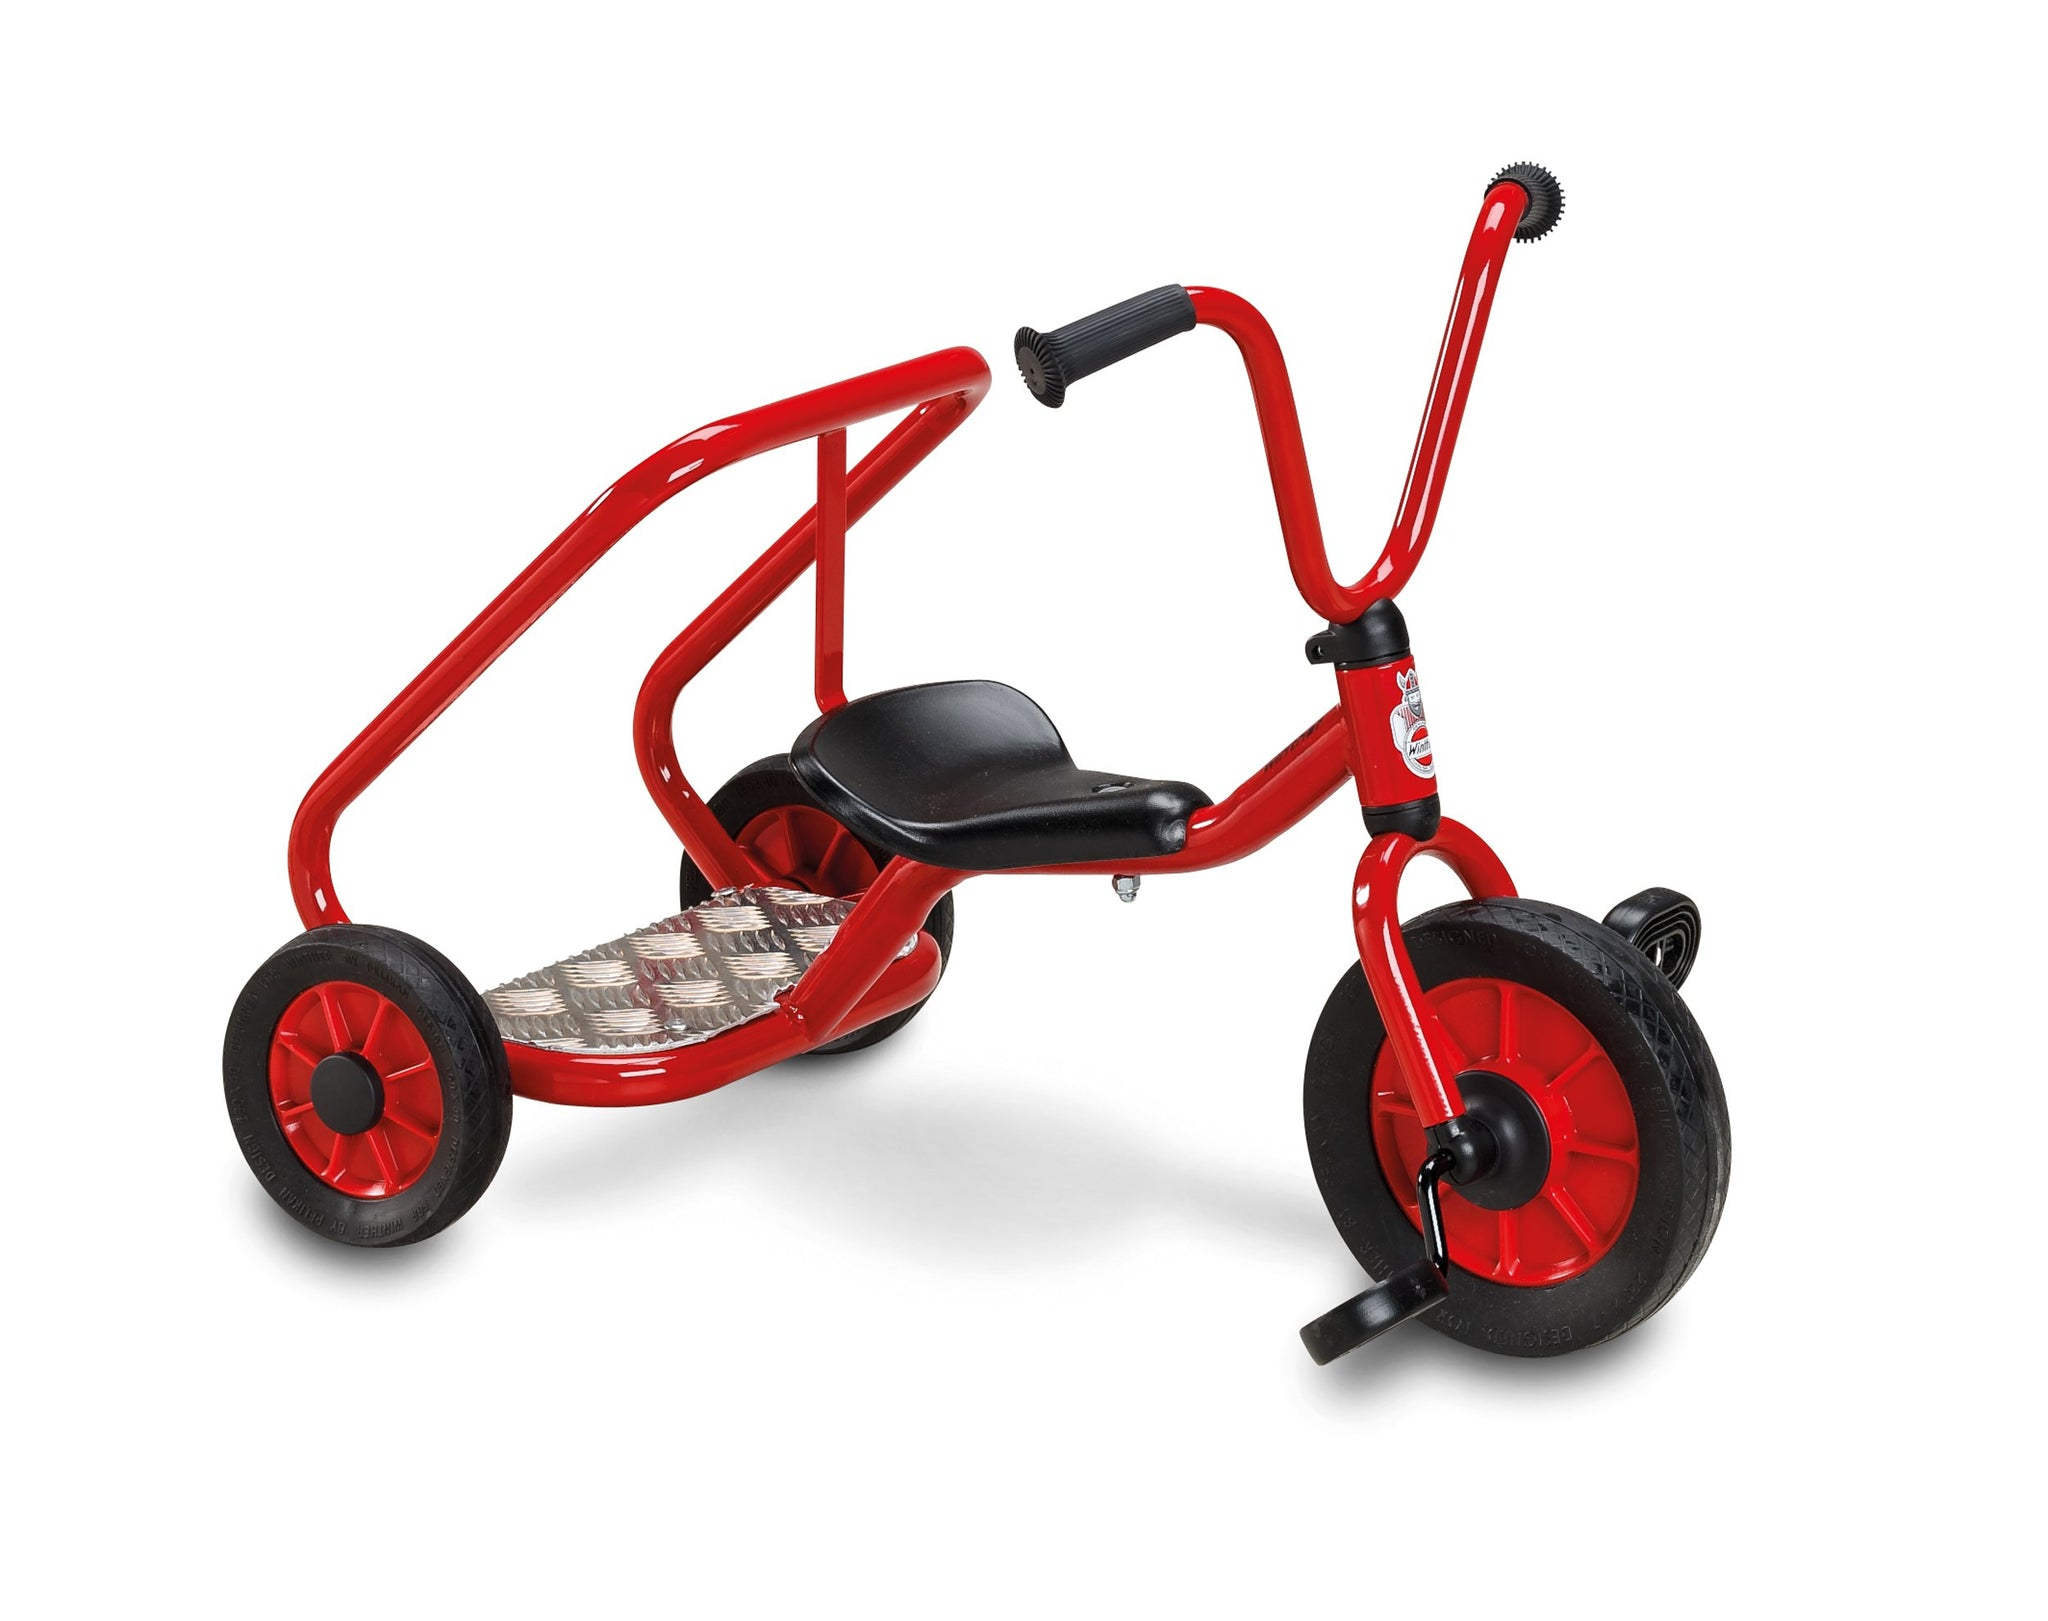 Winther MINI Ben Hur mit Pedalen - Kabonia-Shopping.de